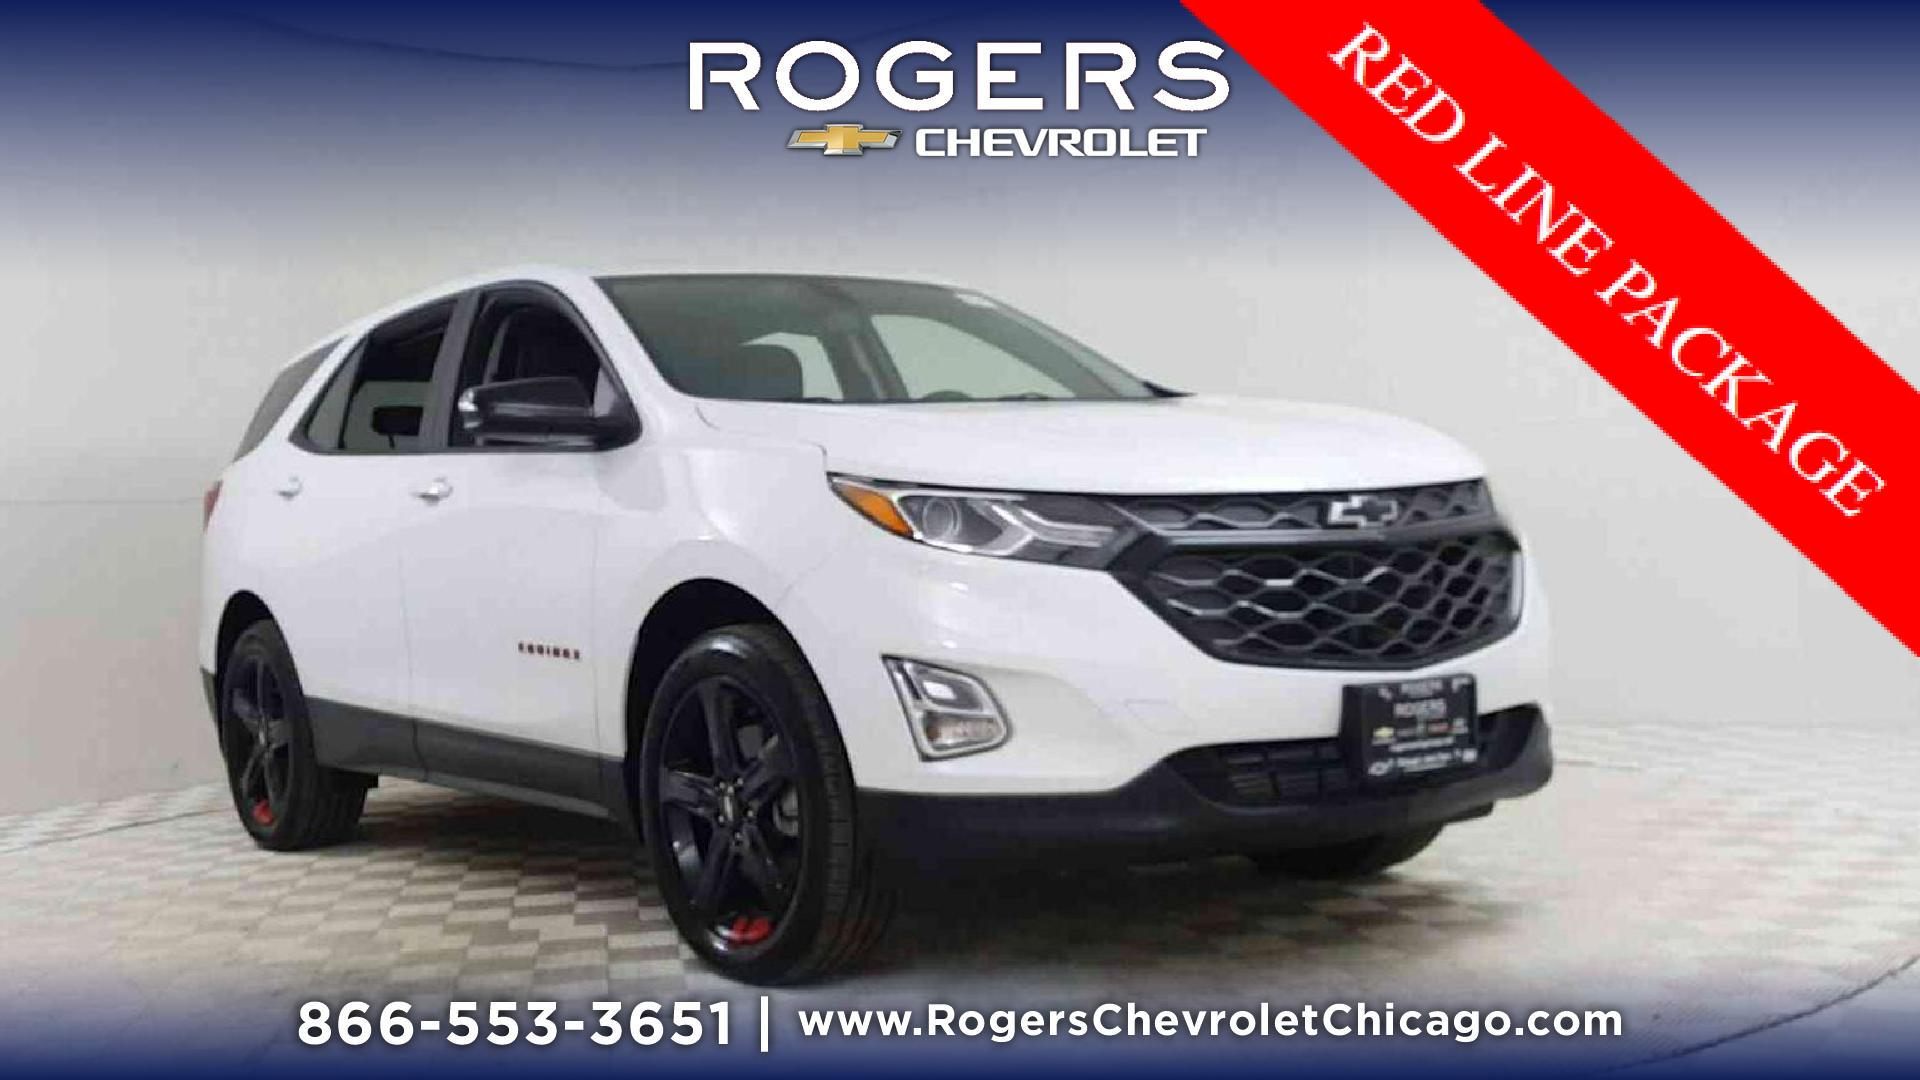 New 2019 Chevrolet Equinox AWD LT in Summit White For Sale